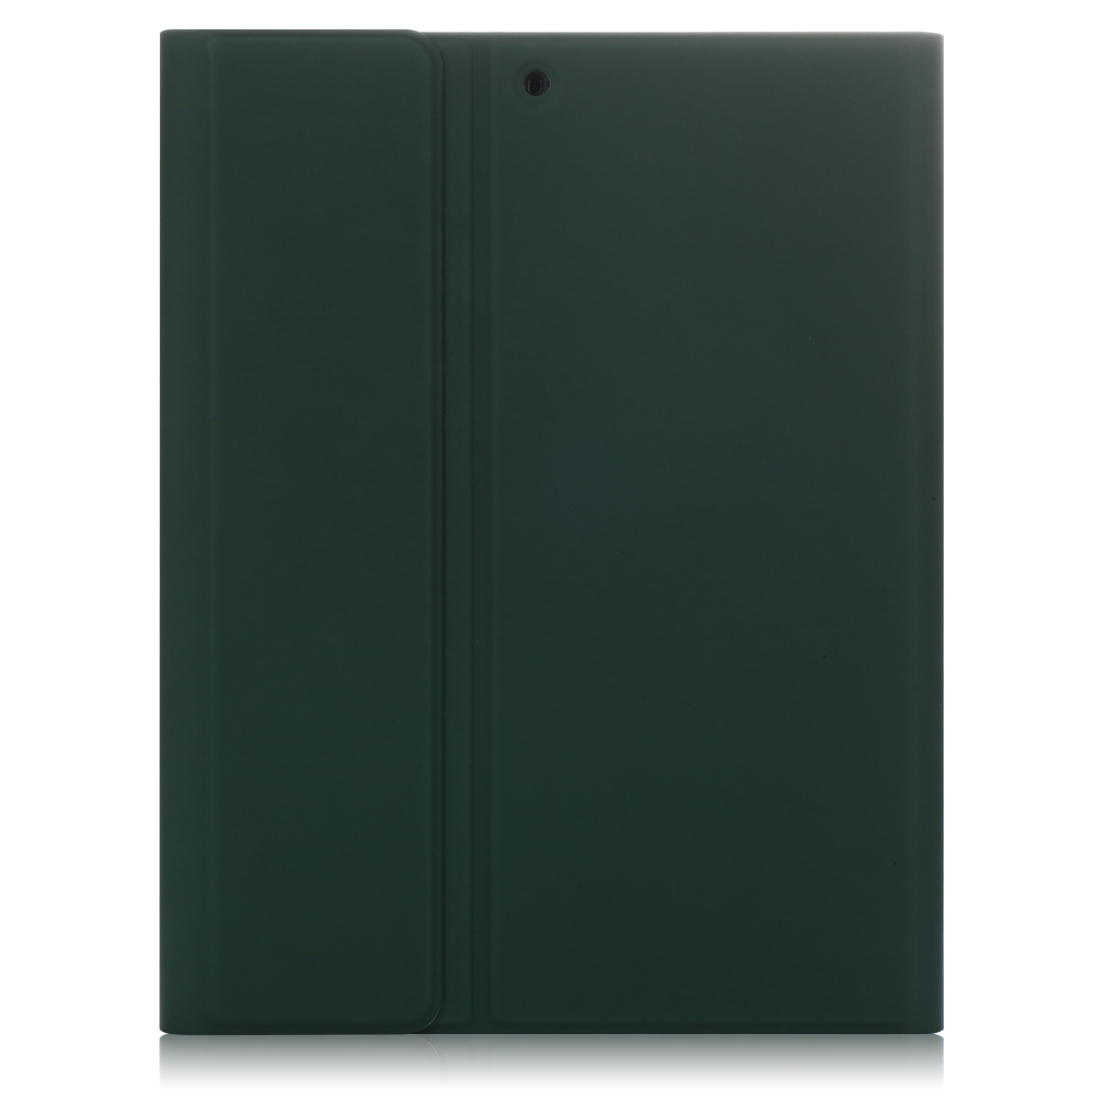 iPad Air 2 Case For iPad Air /Air 2 (2019), Leather Case Without Keyboard (Dark Green)